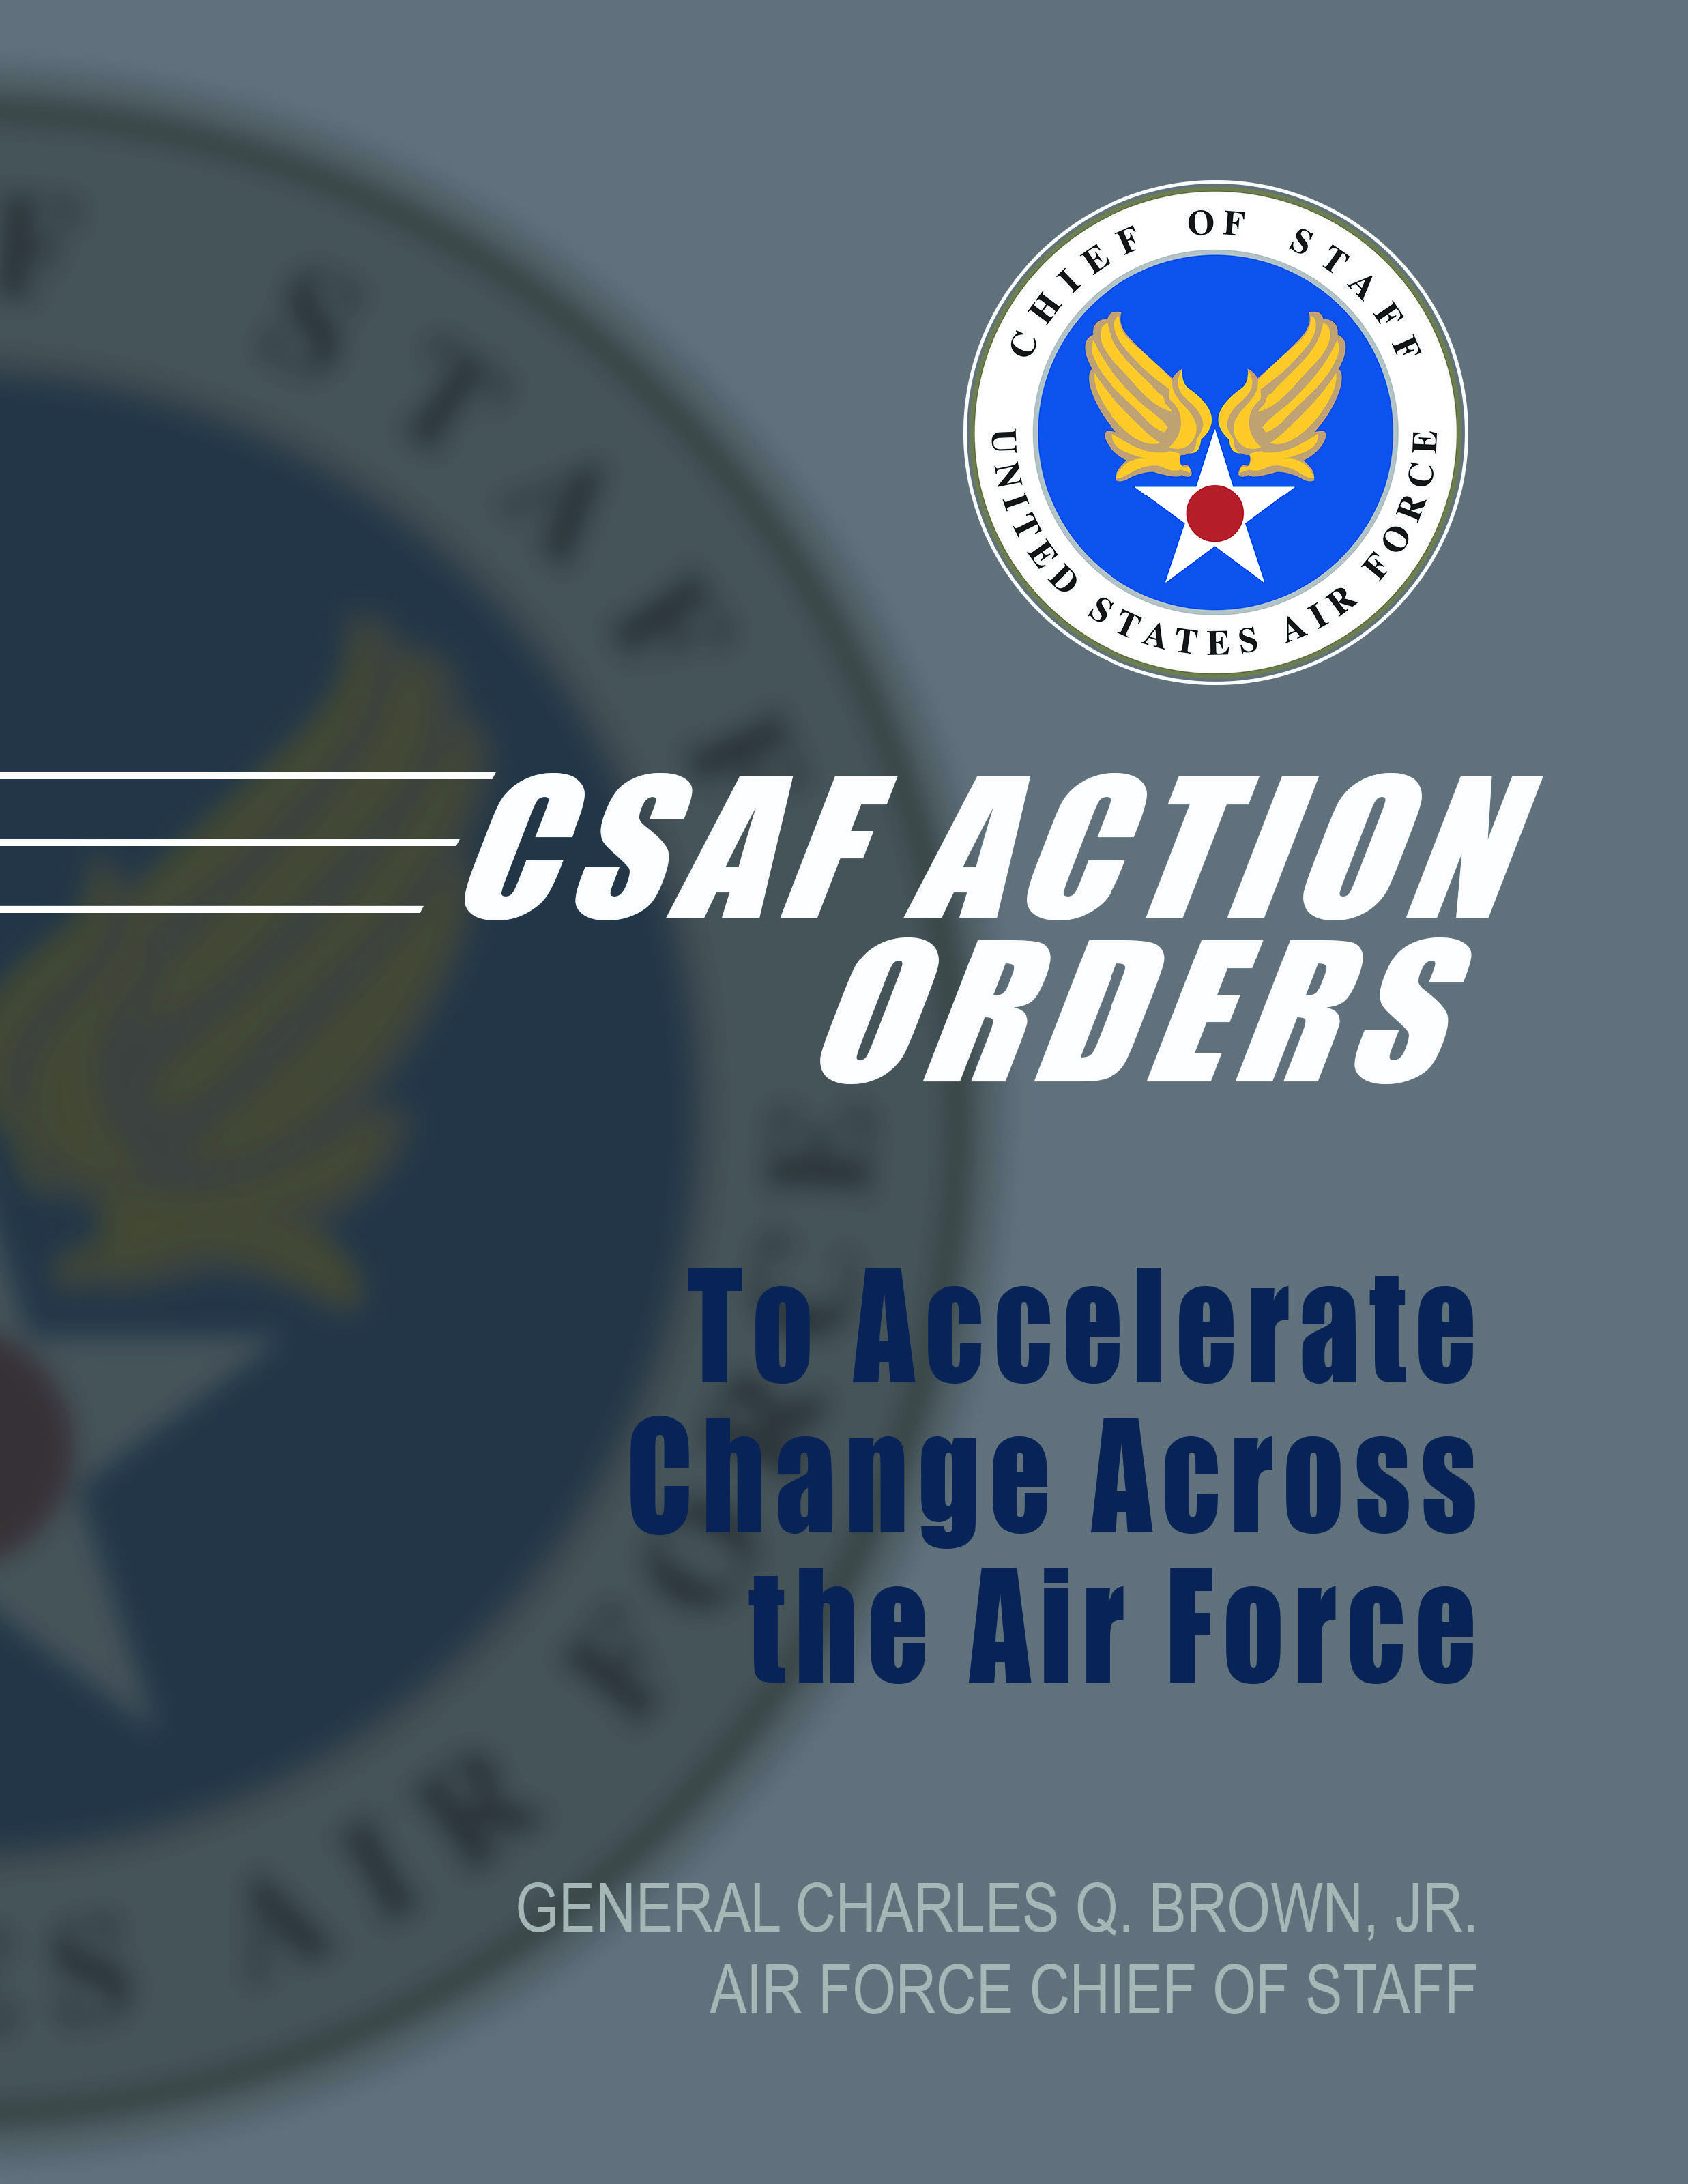 CSAF Action Orders